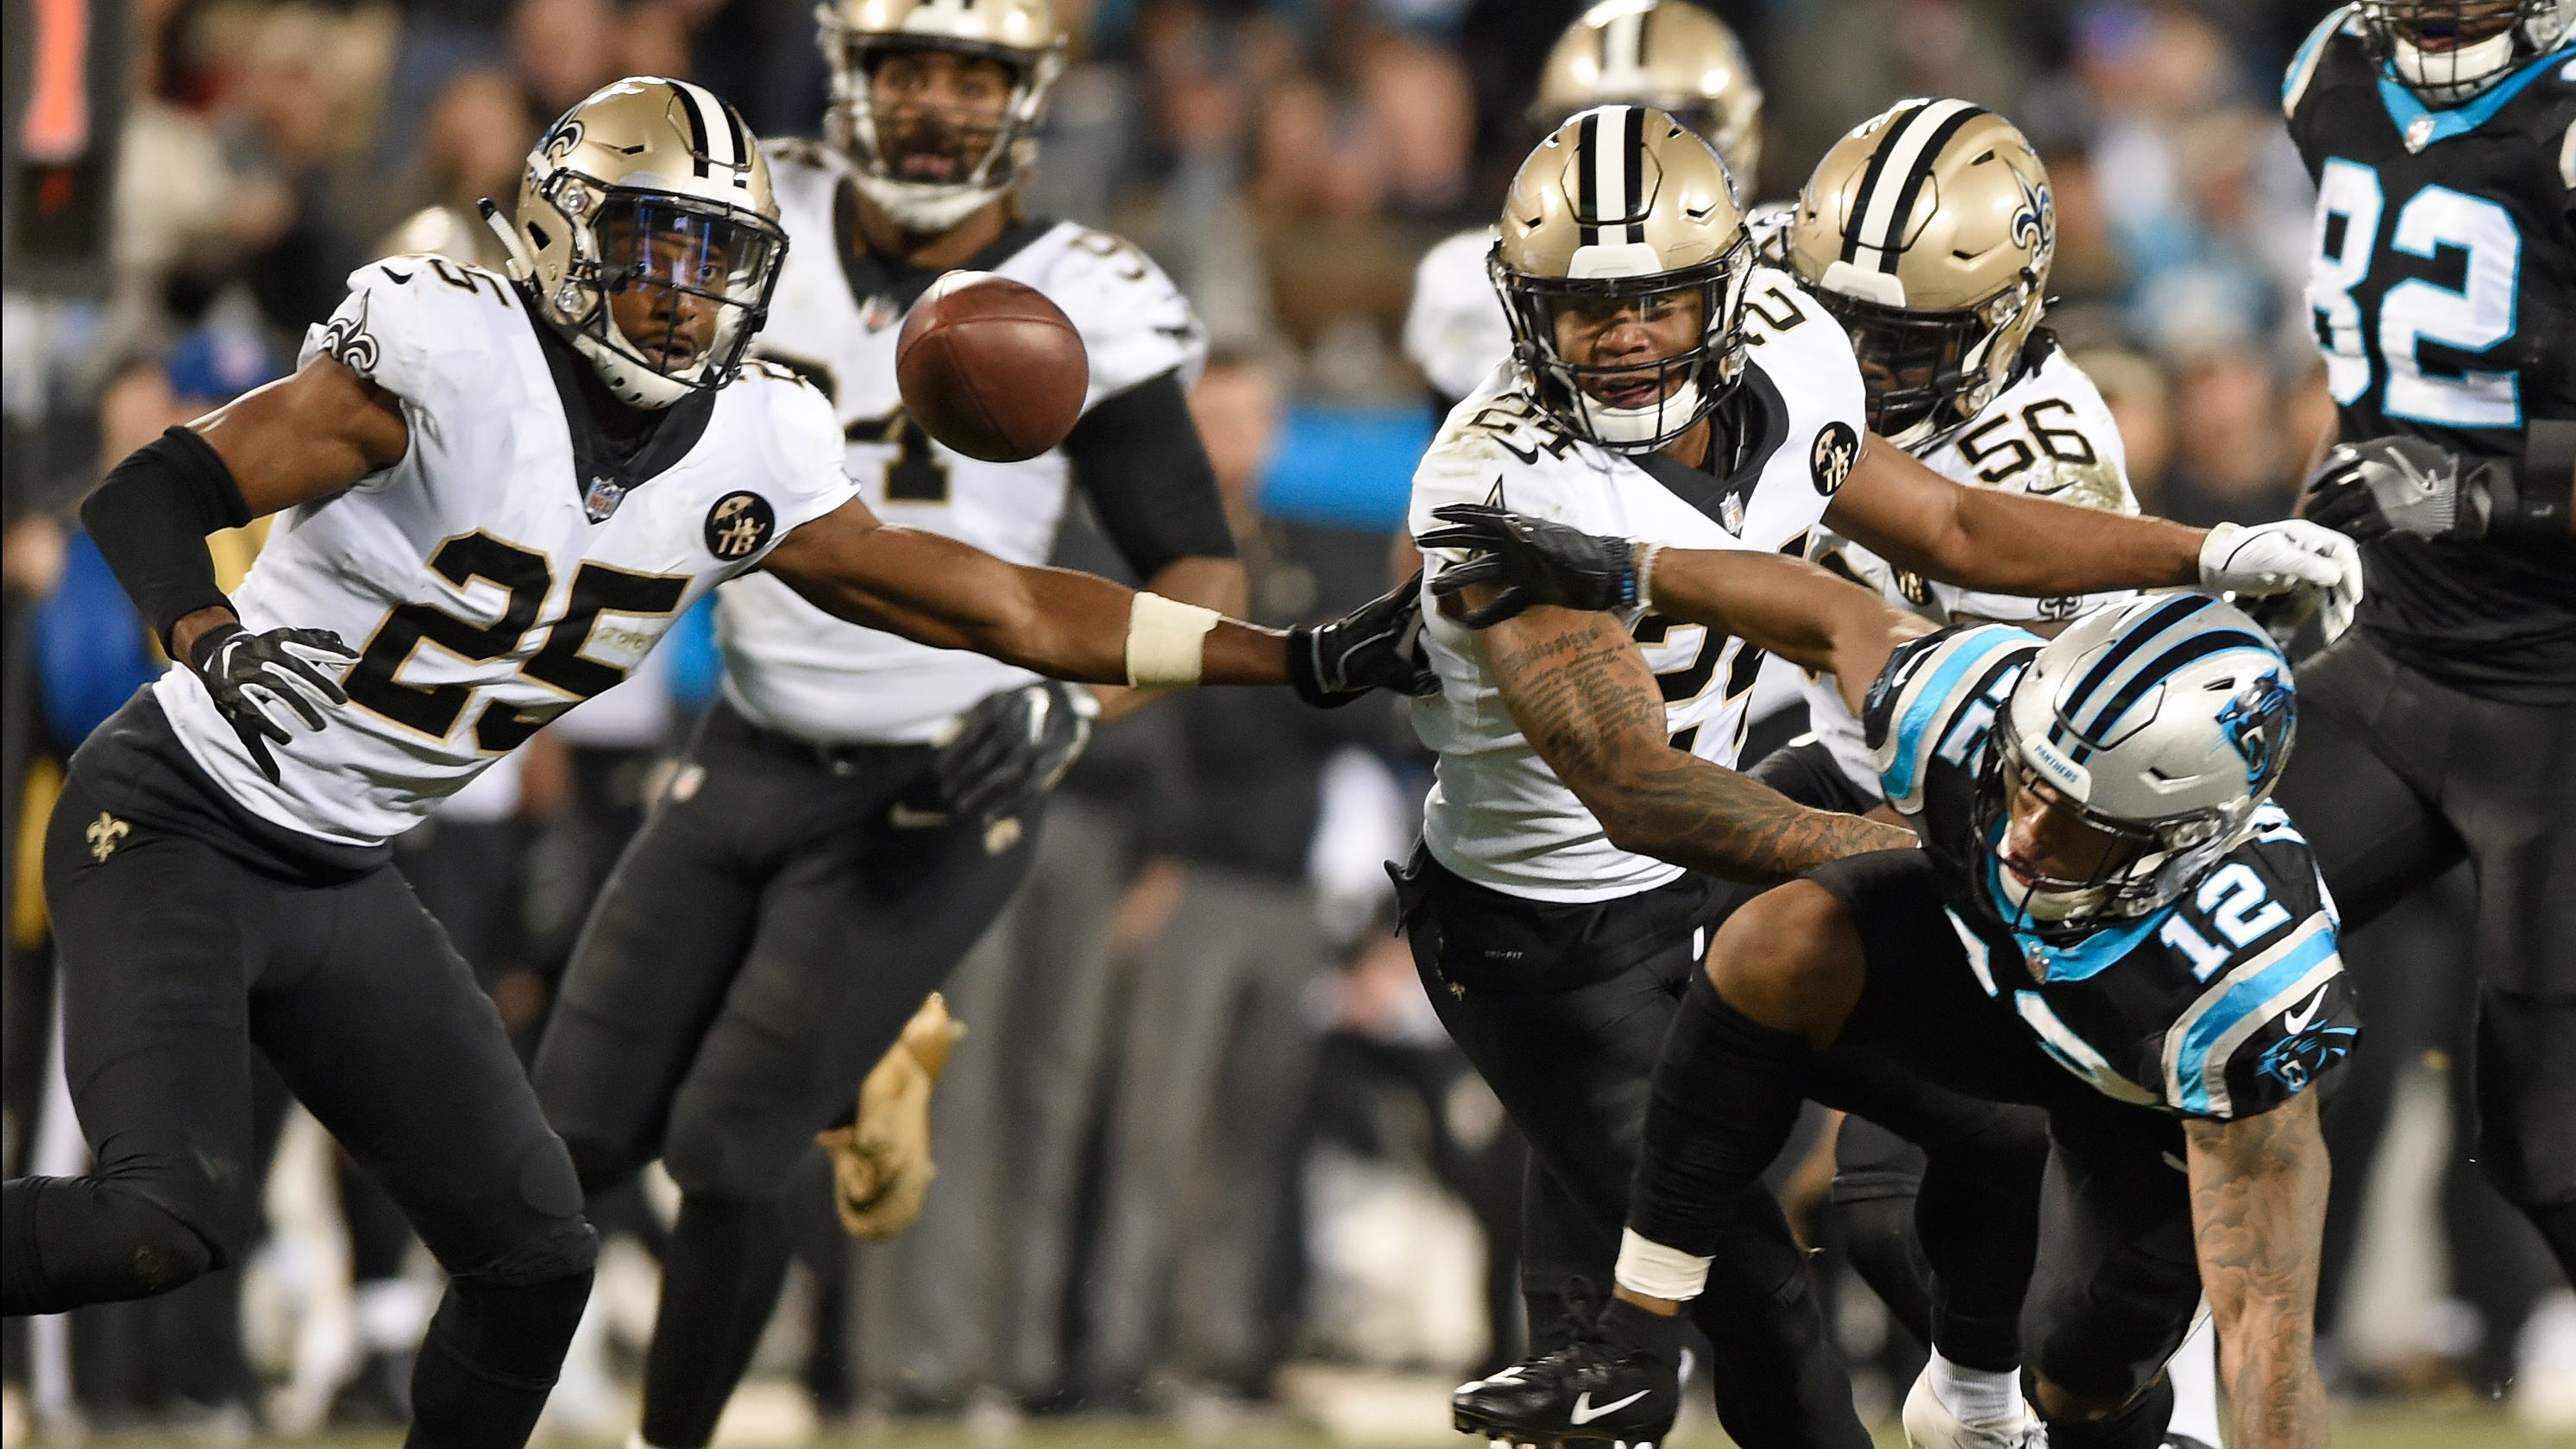 912e7a8a3 Saints  defense puts clamps on Cam Newton in 12-9 win over Panthers